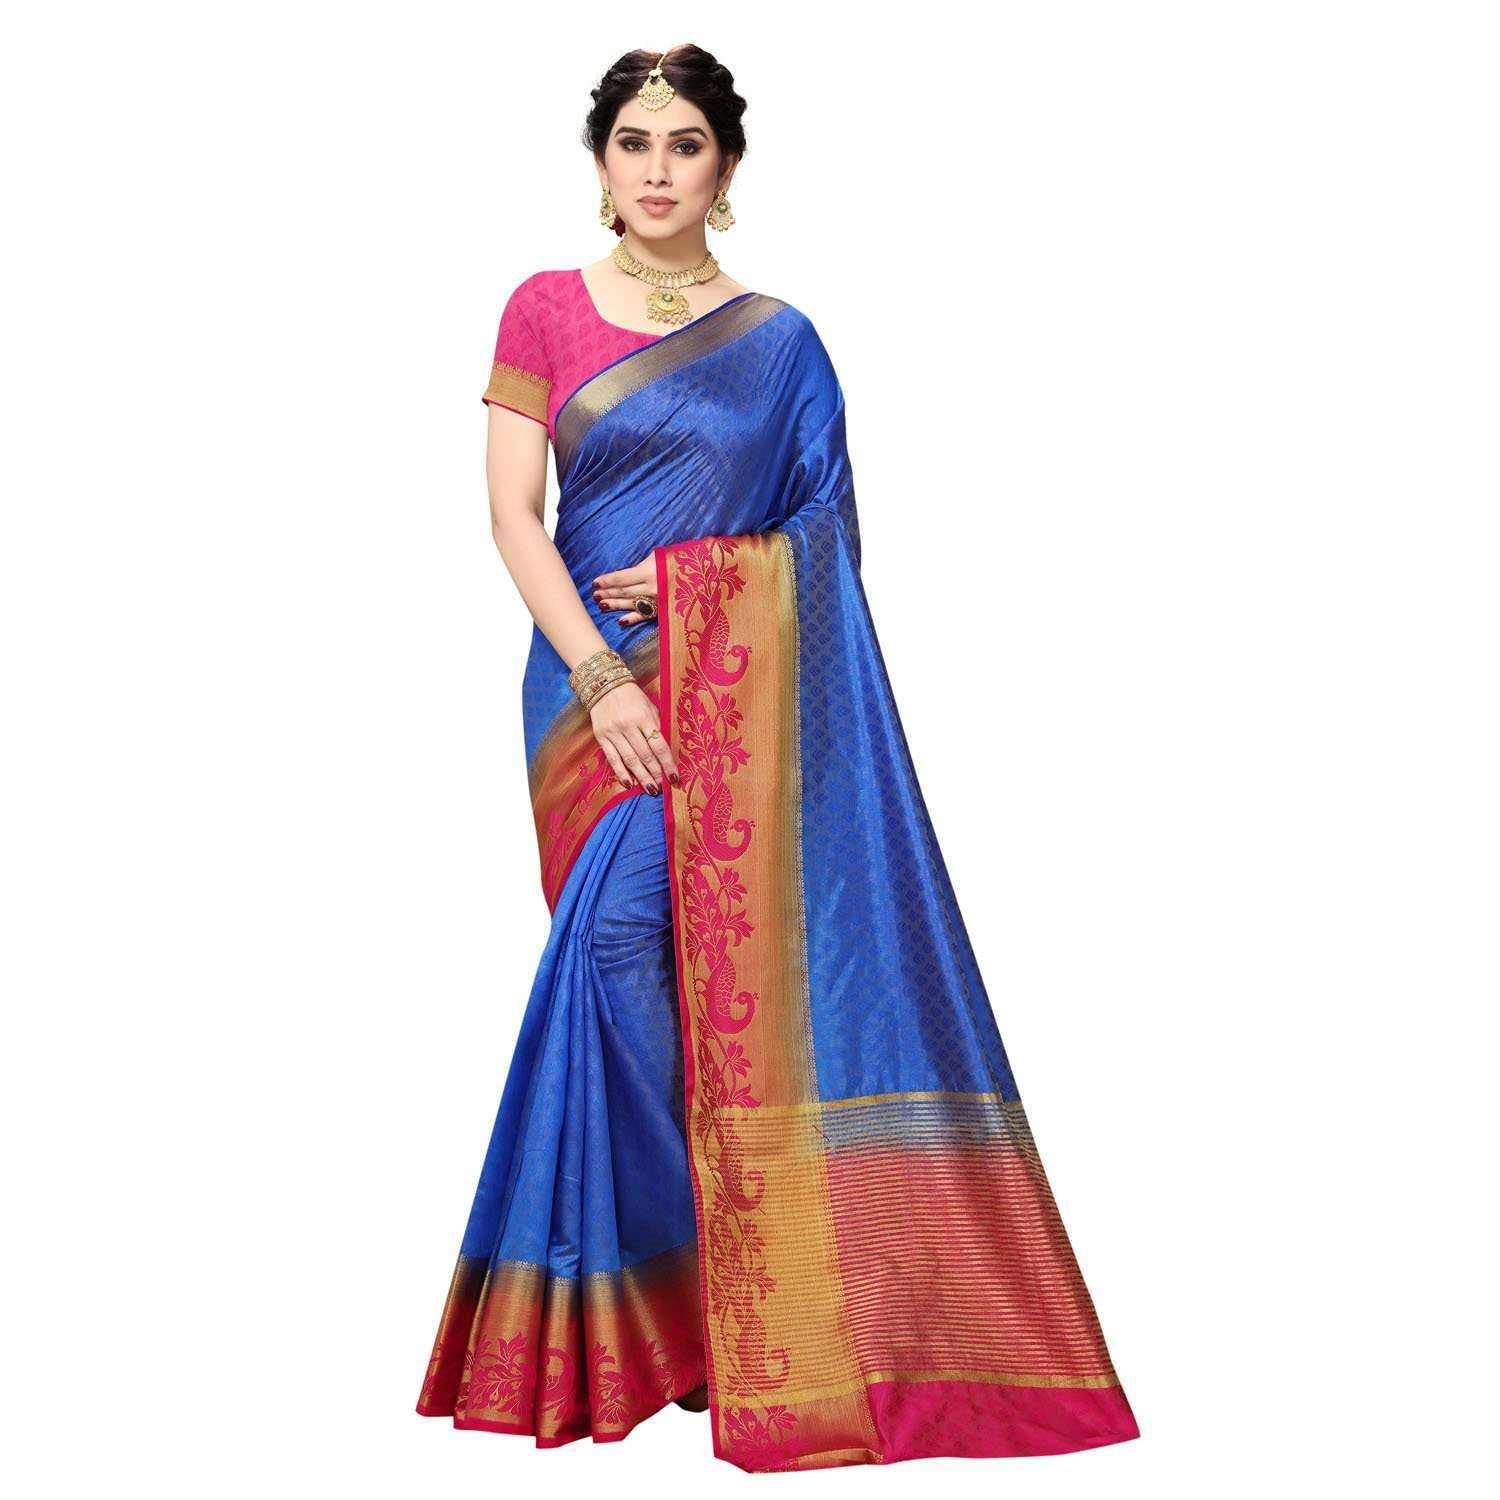 arars Women's Kanchipuram Pattu plain embosed Silk Saree With Blouse (524_royal_rani )